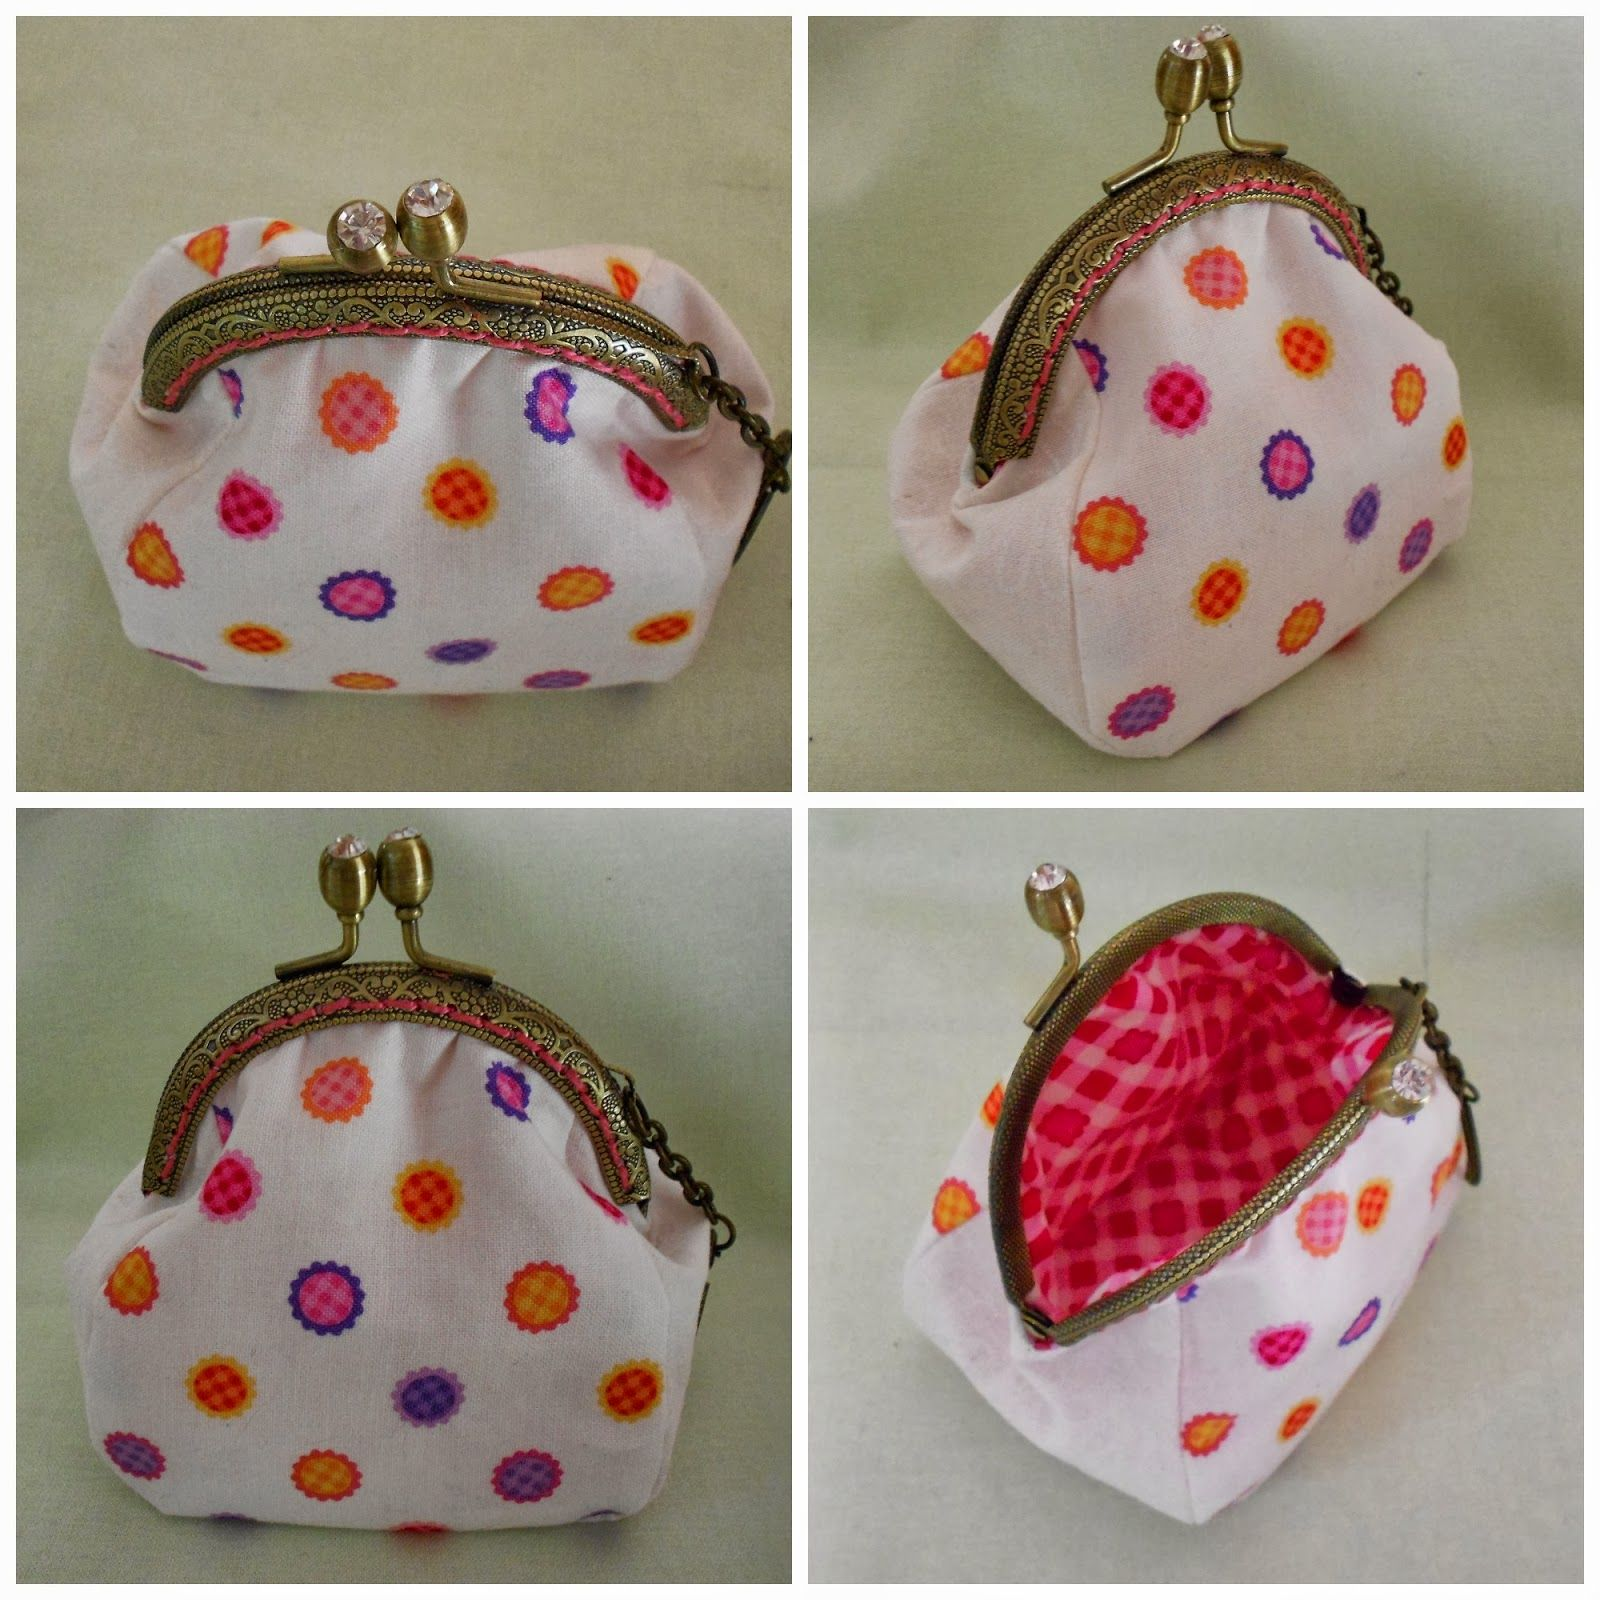 Coin purse tutorial and free pattern for 8cm purse frame | Purse ...